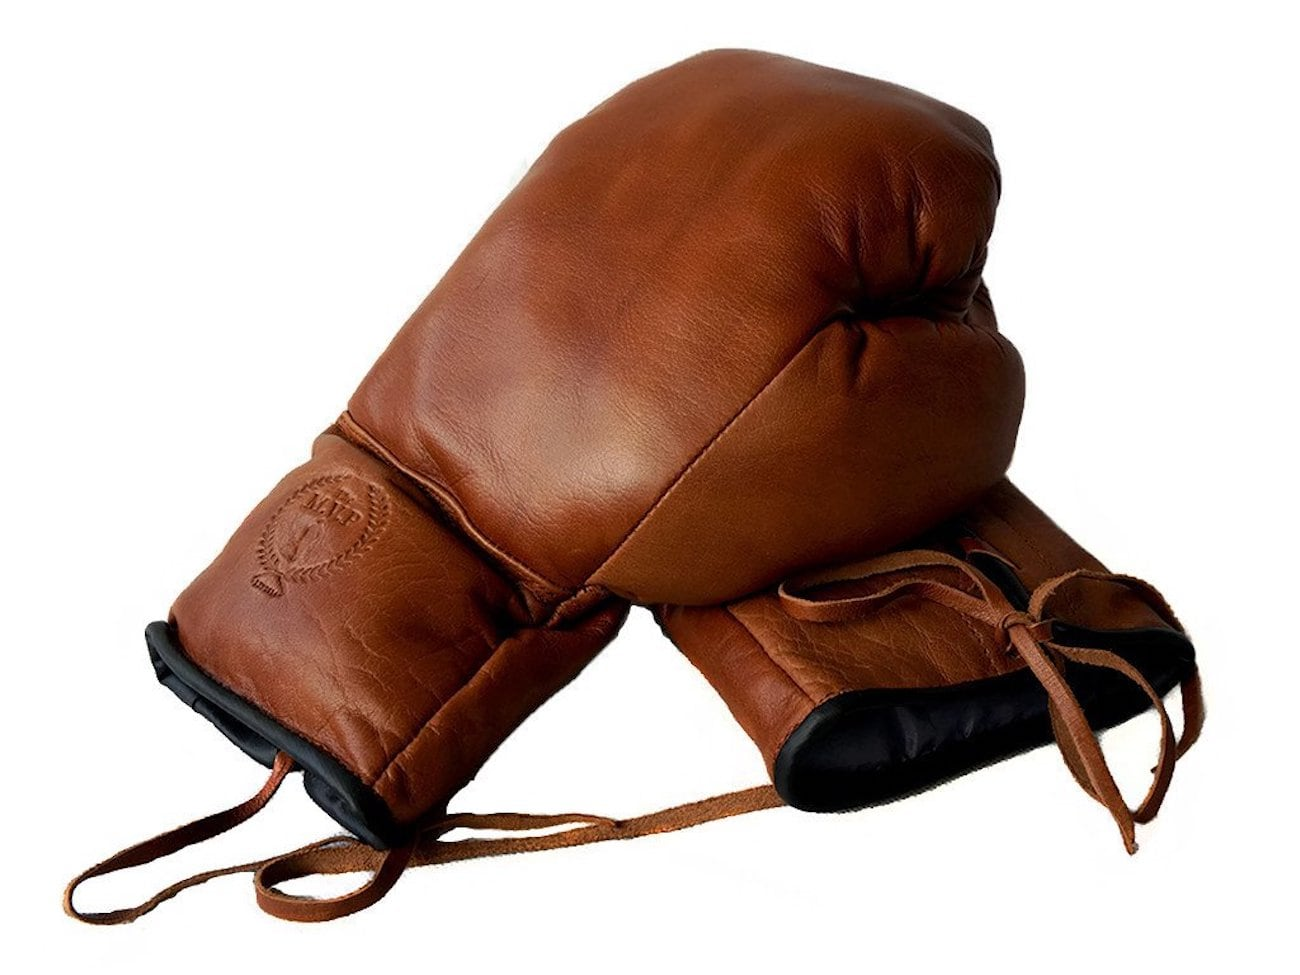 Modest Vintage Deluxe Leather Boxing Gloves